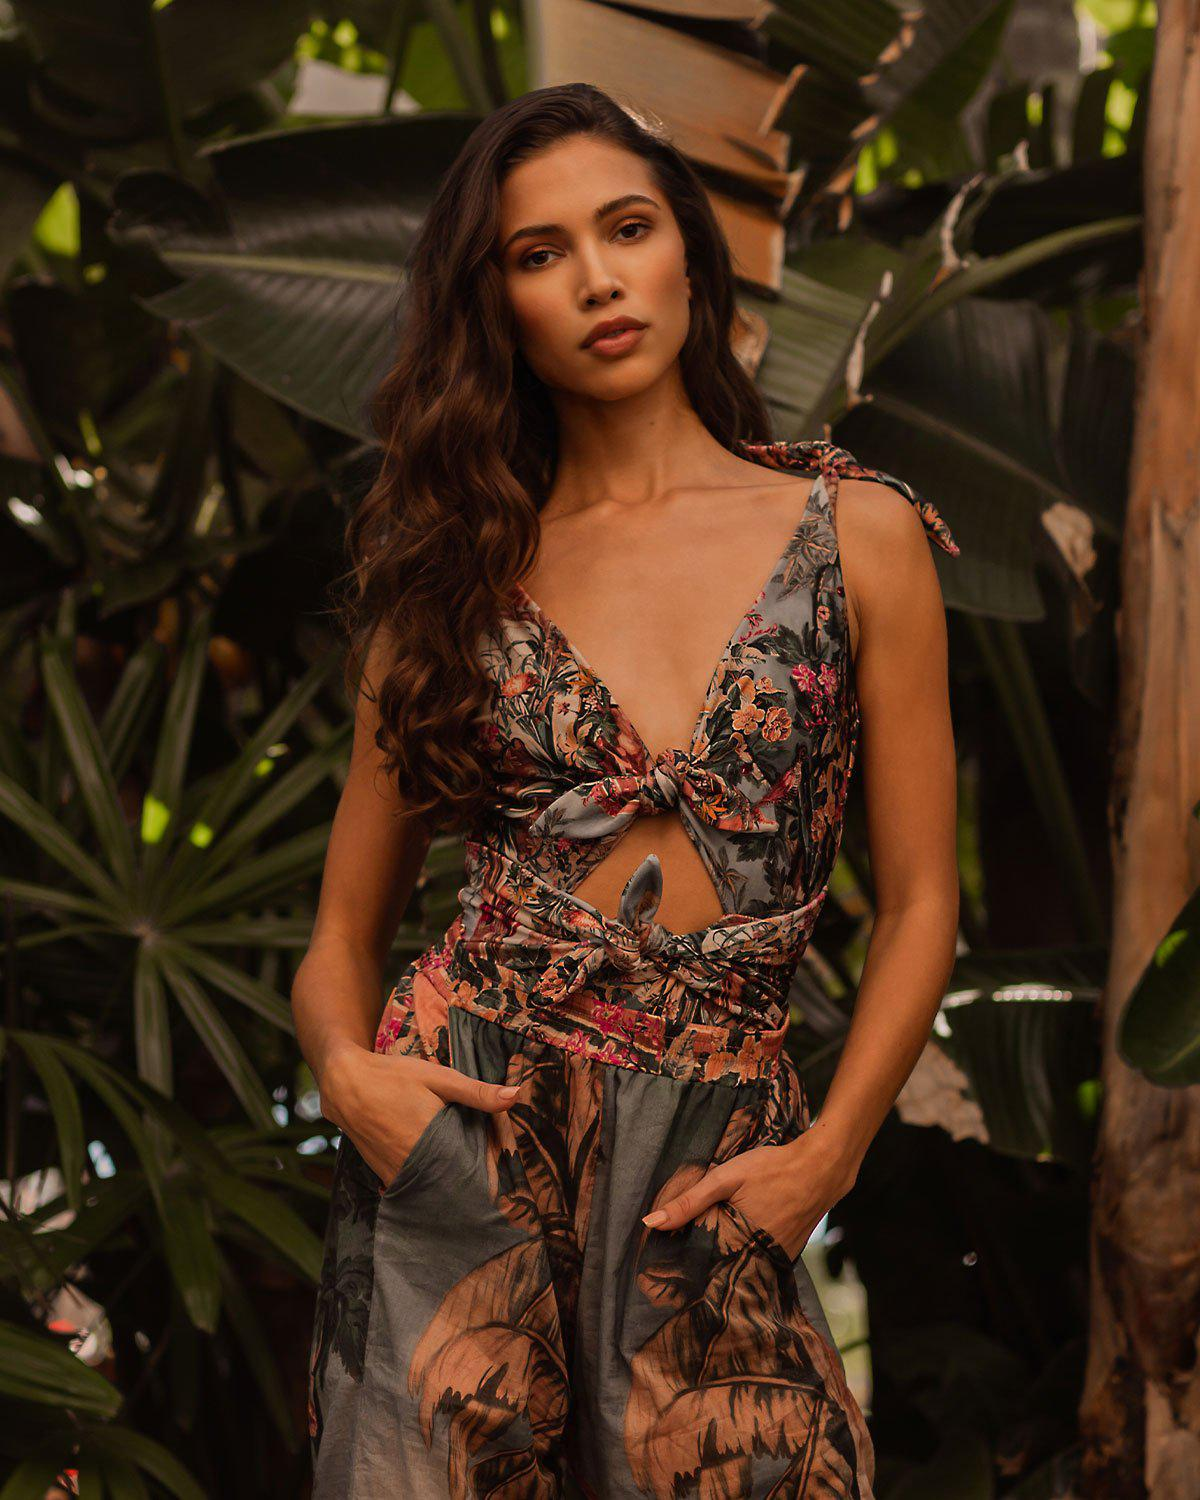 Paraiso Knotted One Piece